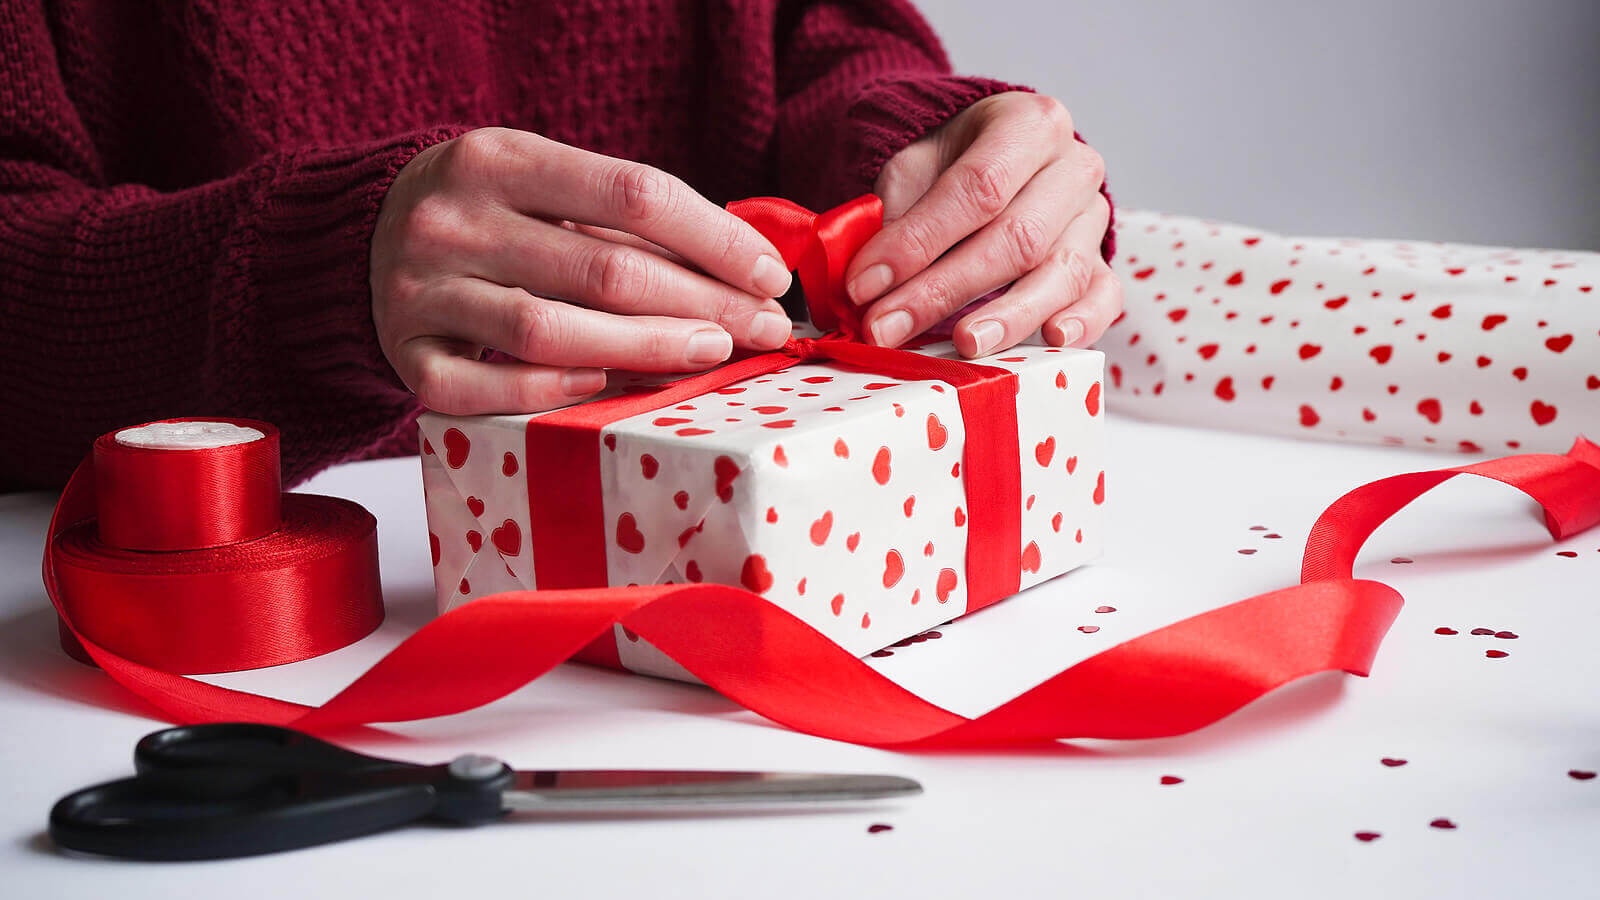 Hands tying a red bow on a wrapped Valentine's Day gift